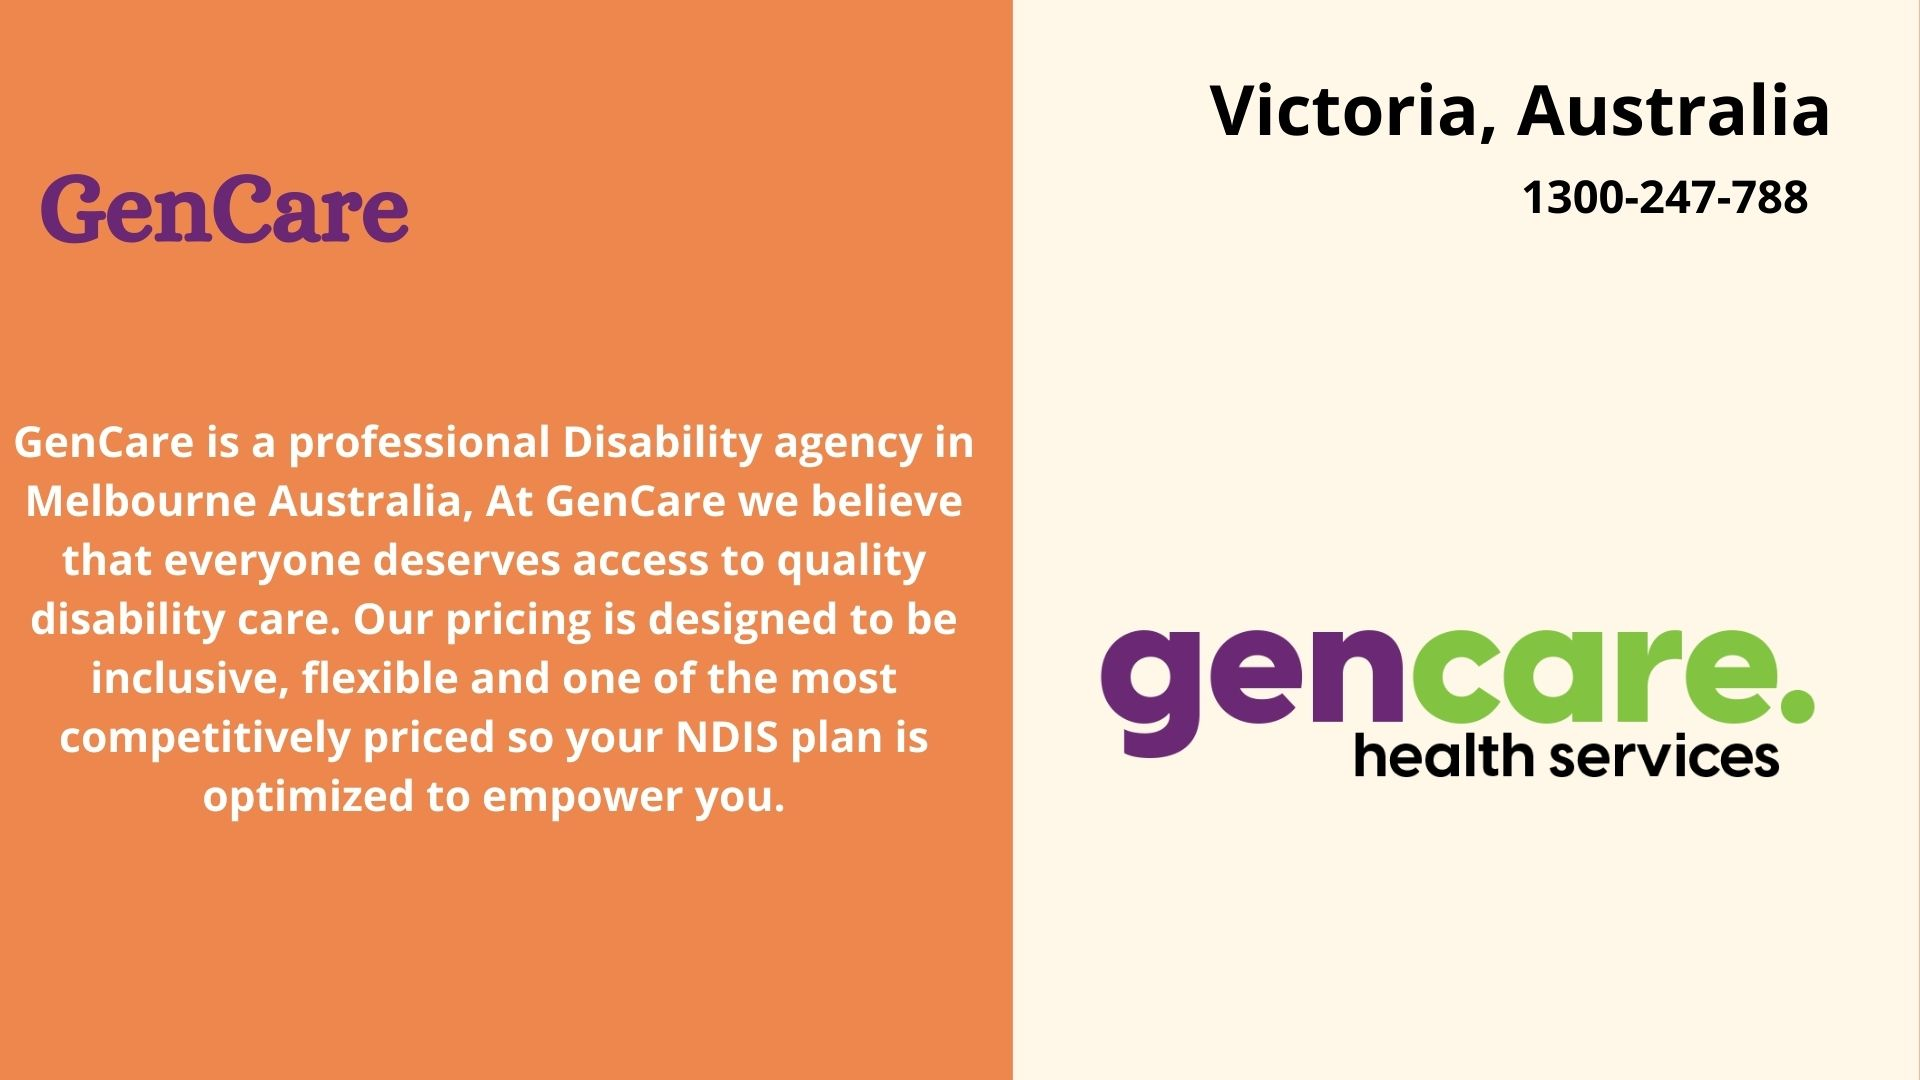 GenCare is a Professional HealthCare Agency